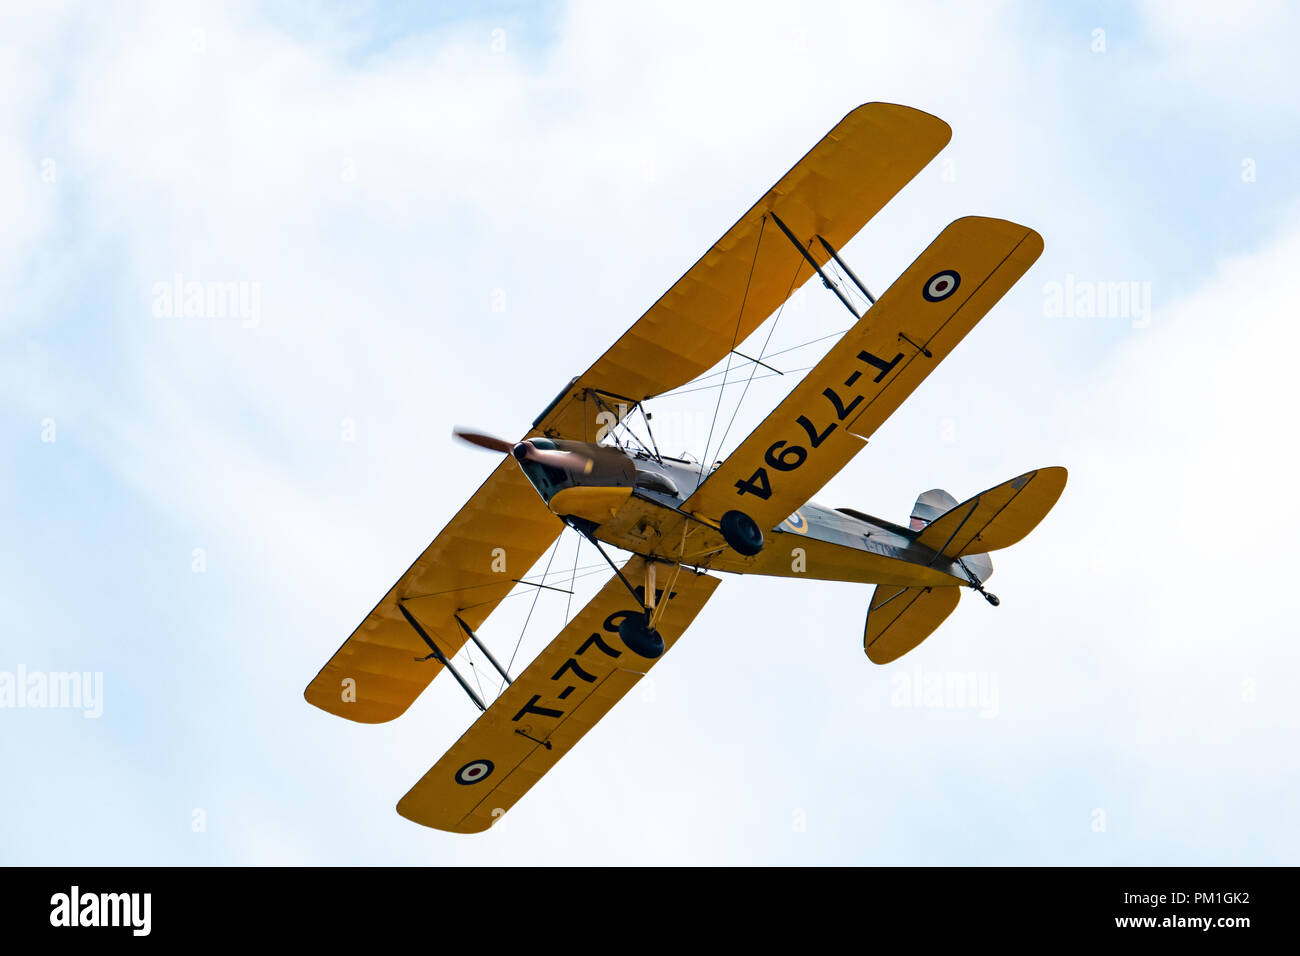 TELFORD, UK, JUNE 10, 2018 - A photograph documenting a lone DH.82 Tiger Moth Trainer aircraft at RAF Cosford as part of the RAF 100 Centenary air sho - Stock Image